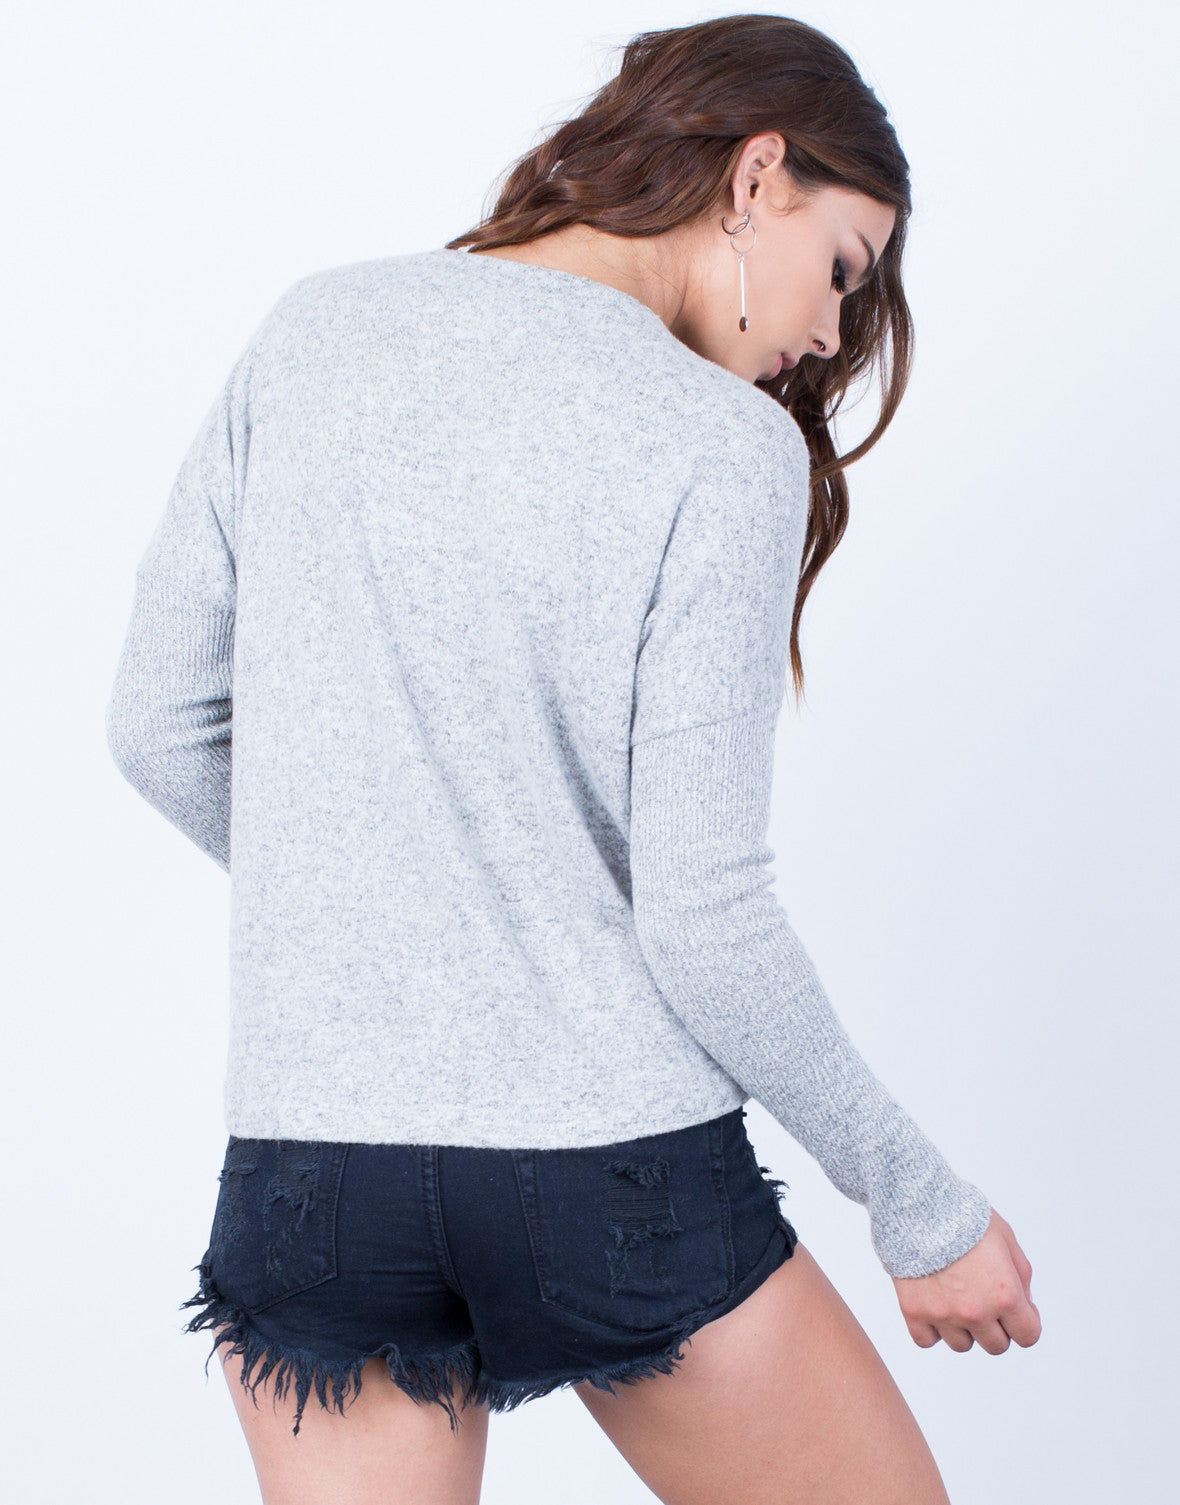 Back View of Super Softy Sweater Top